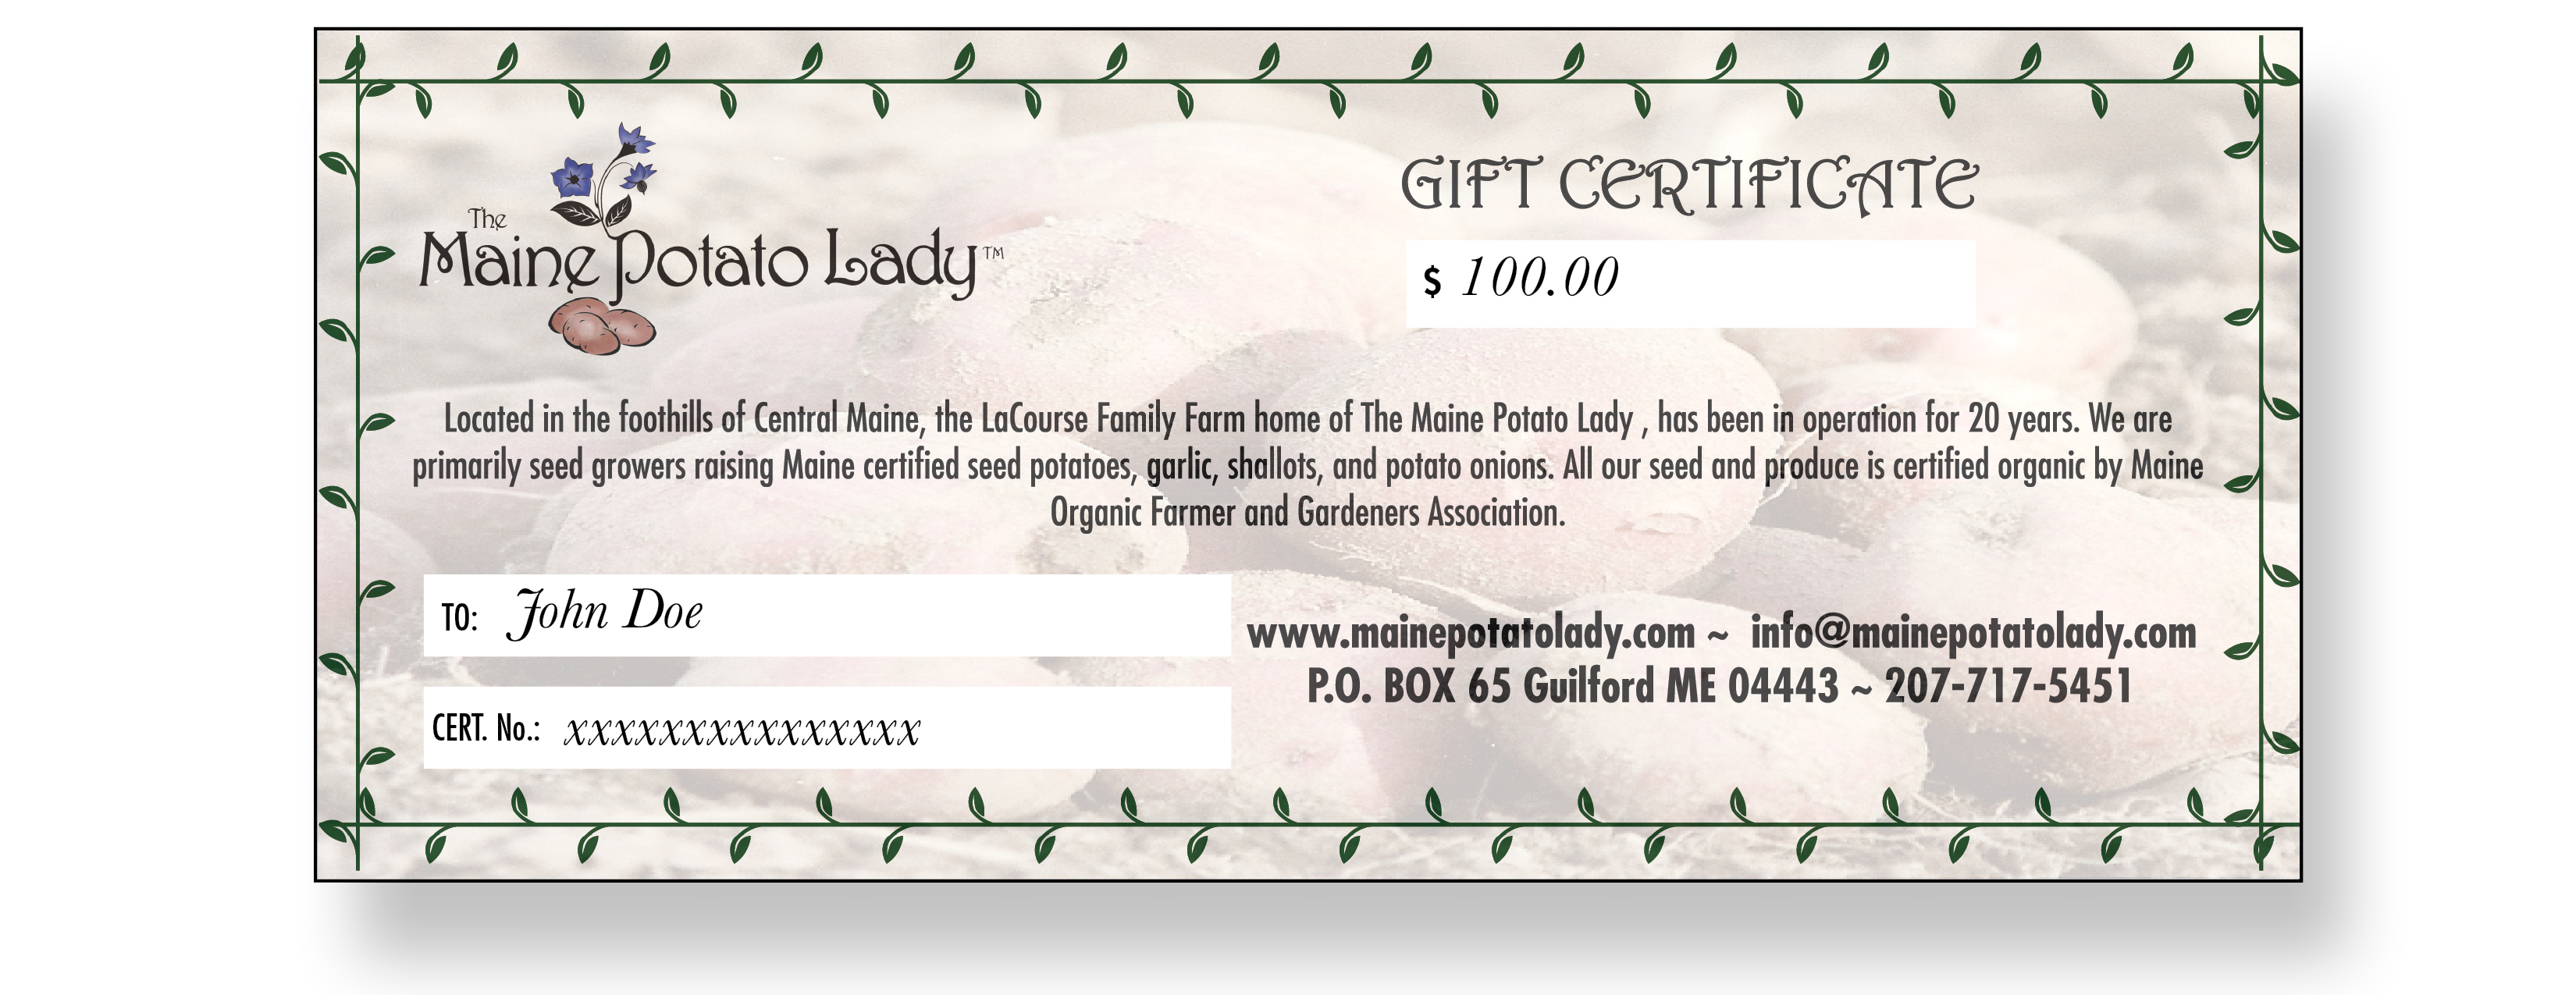 Gift Certificate The Maine Potato Lady